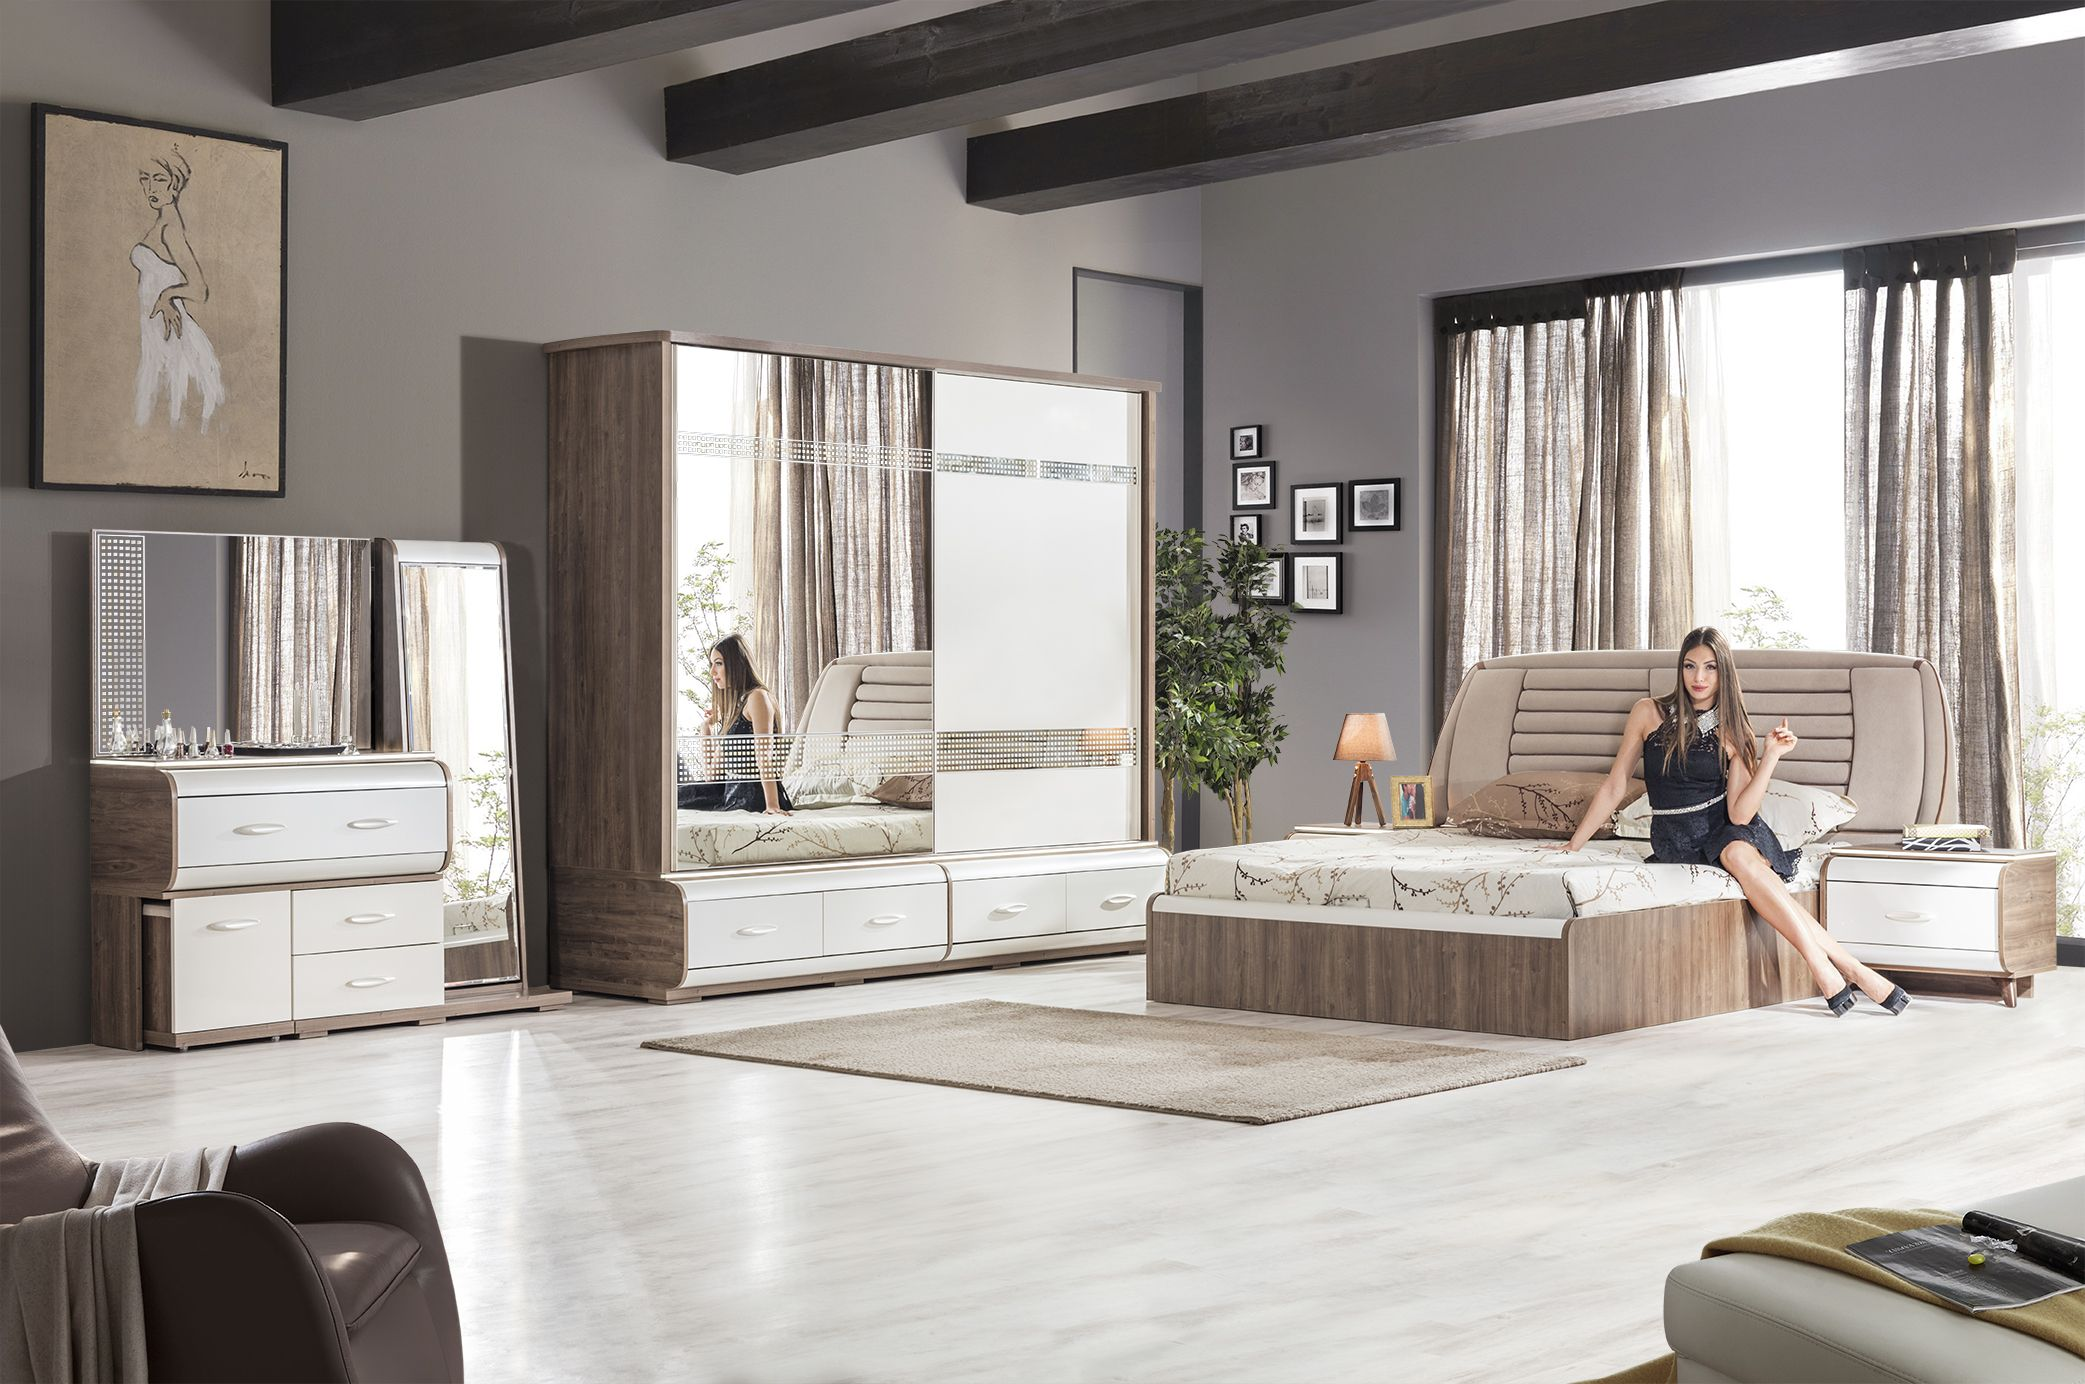 Best Labella Designed For You With Its Elegant Look Stylish 640 x 480